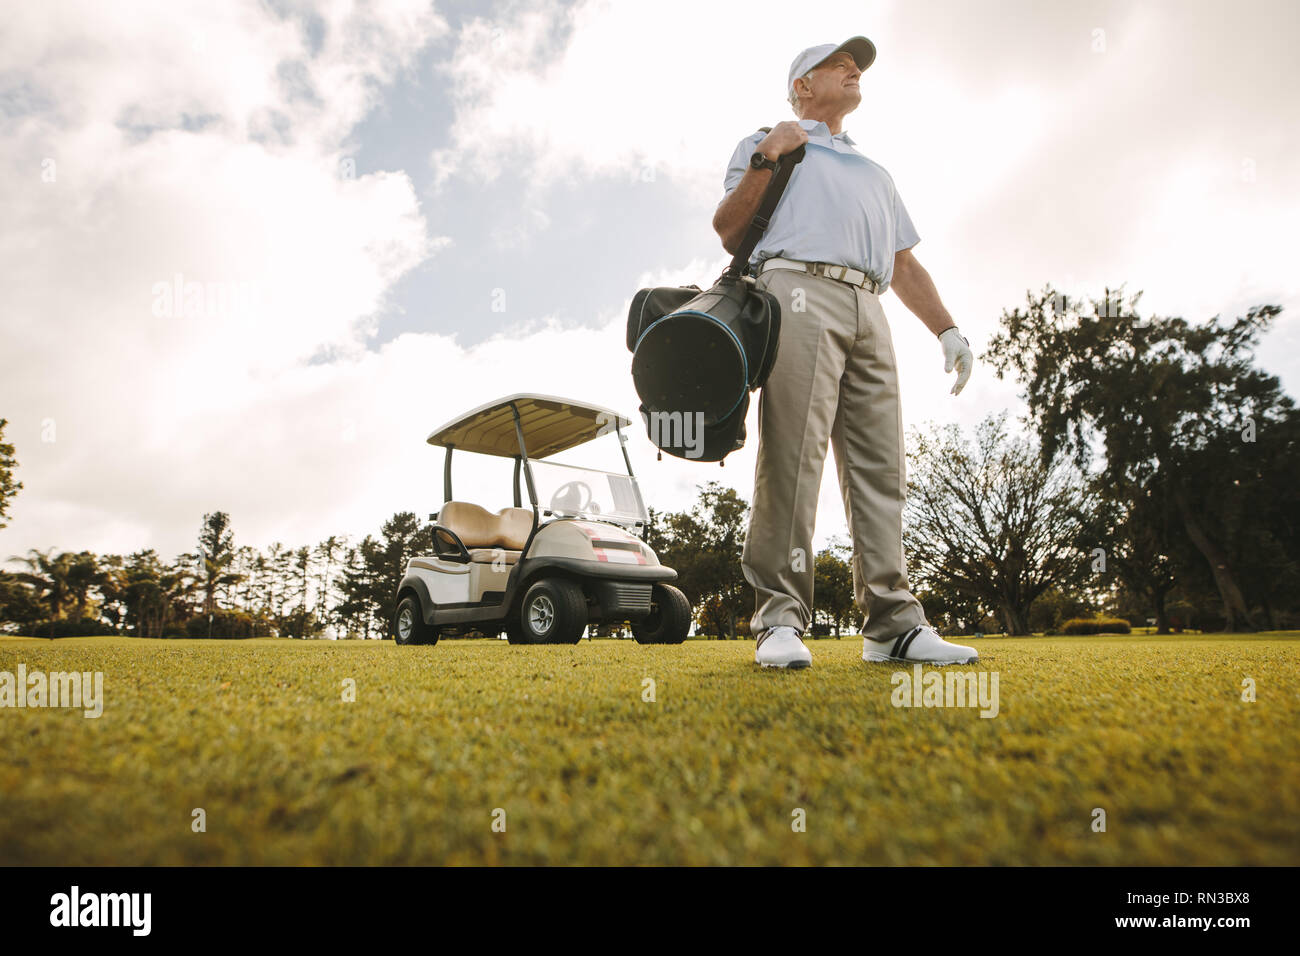 Low angle shot of senior male golfer standing on the golf course with his golf bag and a golf cart at the back. Male golfer carrying golf bag on the g - Stock Image